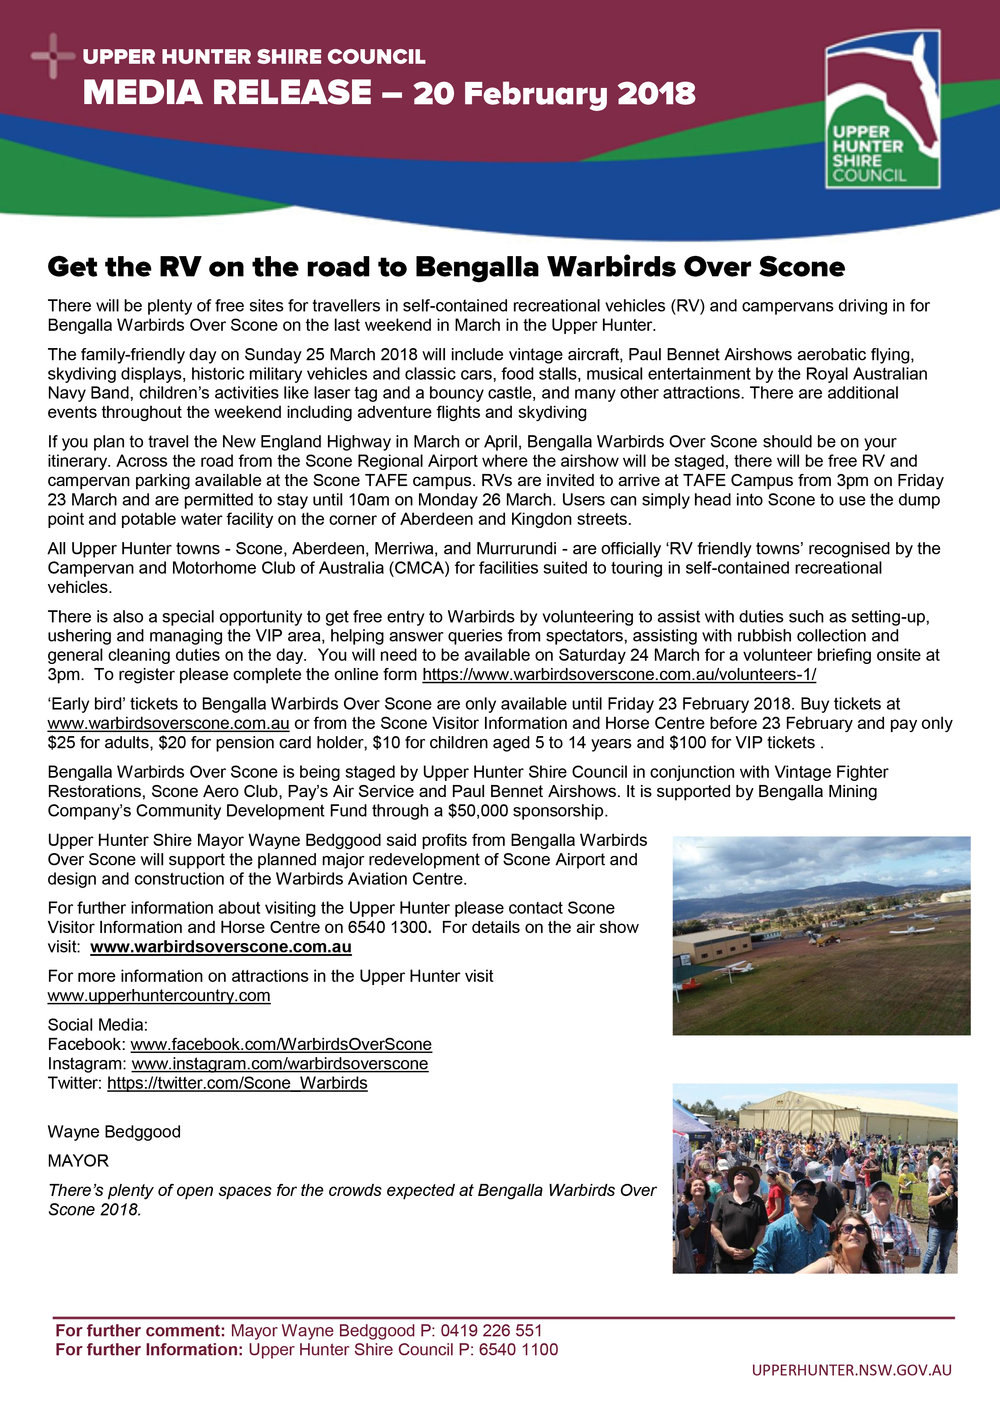 Media Release - Get the RV on the road to Bengalla Warbirds Over Scone - 20 February 2018.jpg